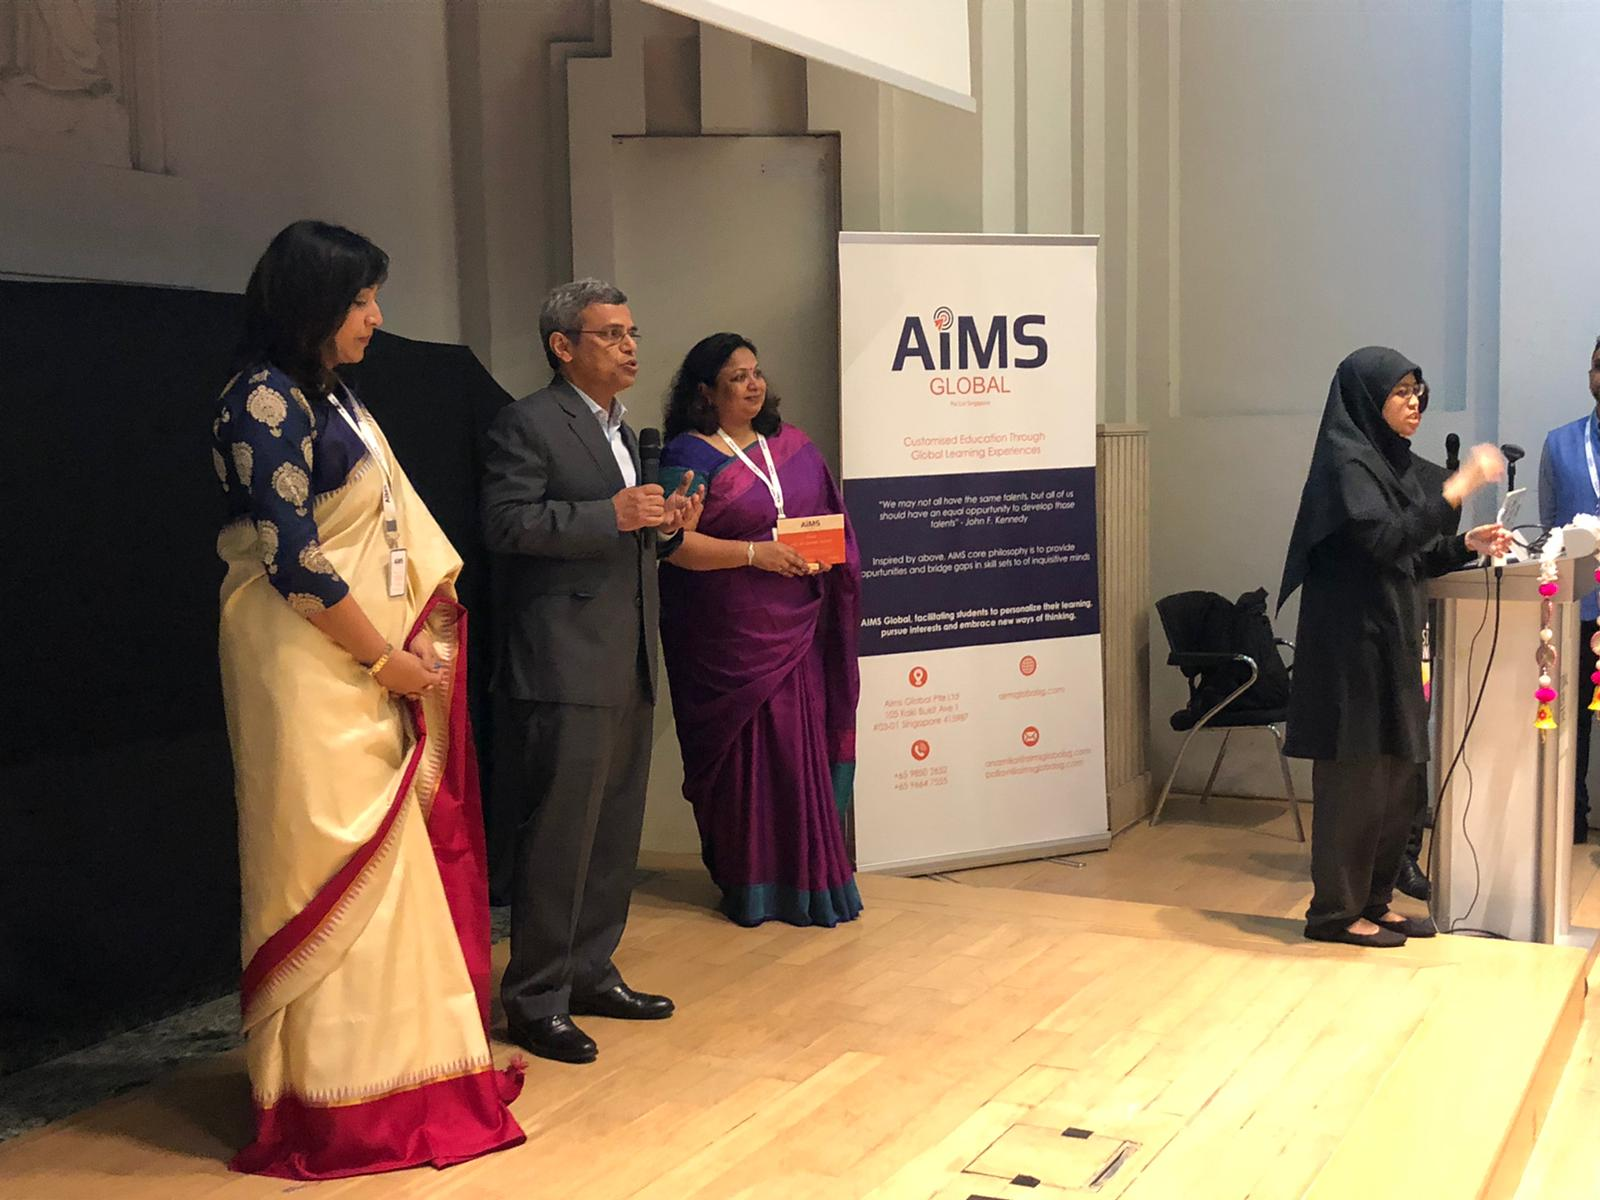 Guest of Honour India's High Commissioner to Singapore Jawed Ashraff flanked by founders of AiMS, Dr. Pallavi Agarwal and Dr. Anamika Gupta Photo Courtesy: AiMS Global